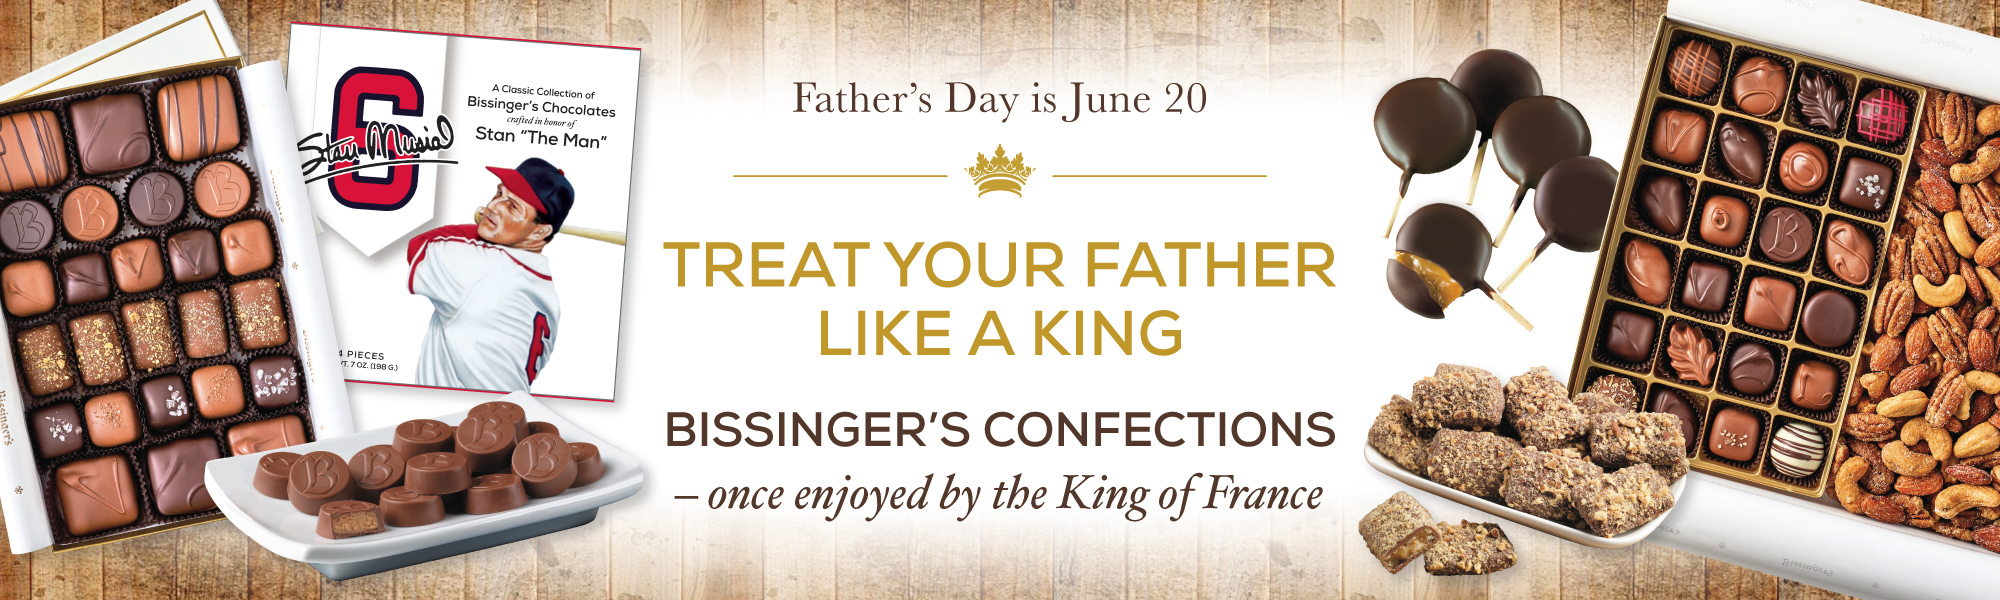 Bissinger's Father's Day